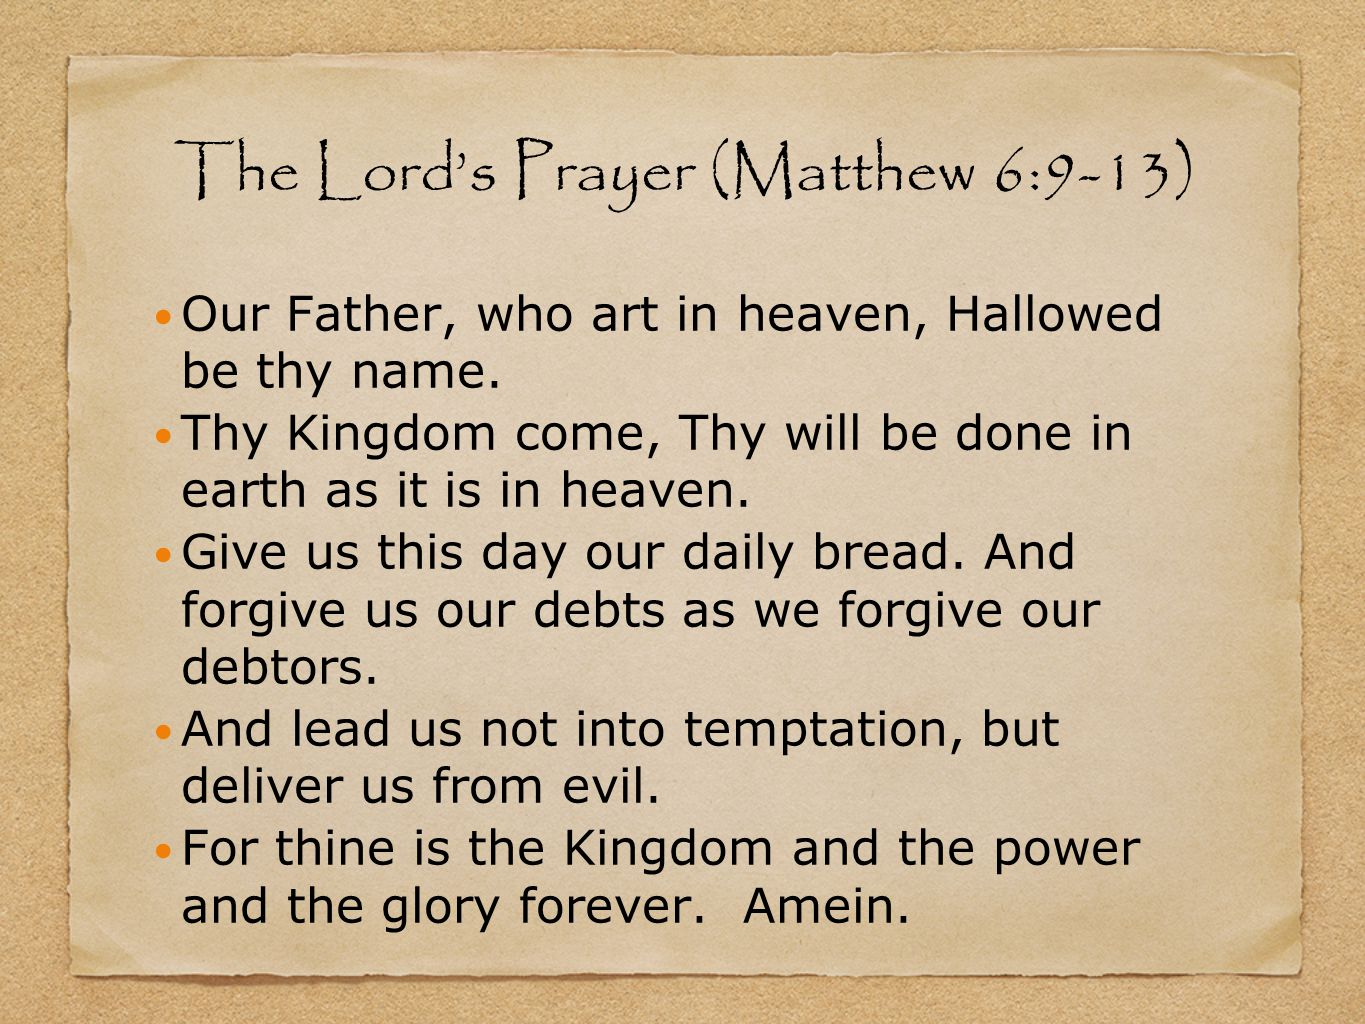 The Lord's Prayer (Matthew 6:9-13) Our Father, who art in heaven, Hallowed be thy name.